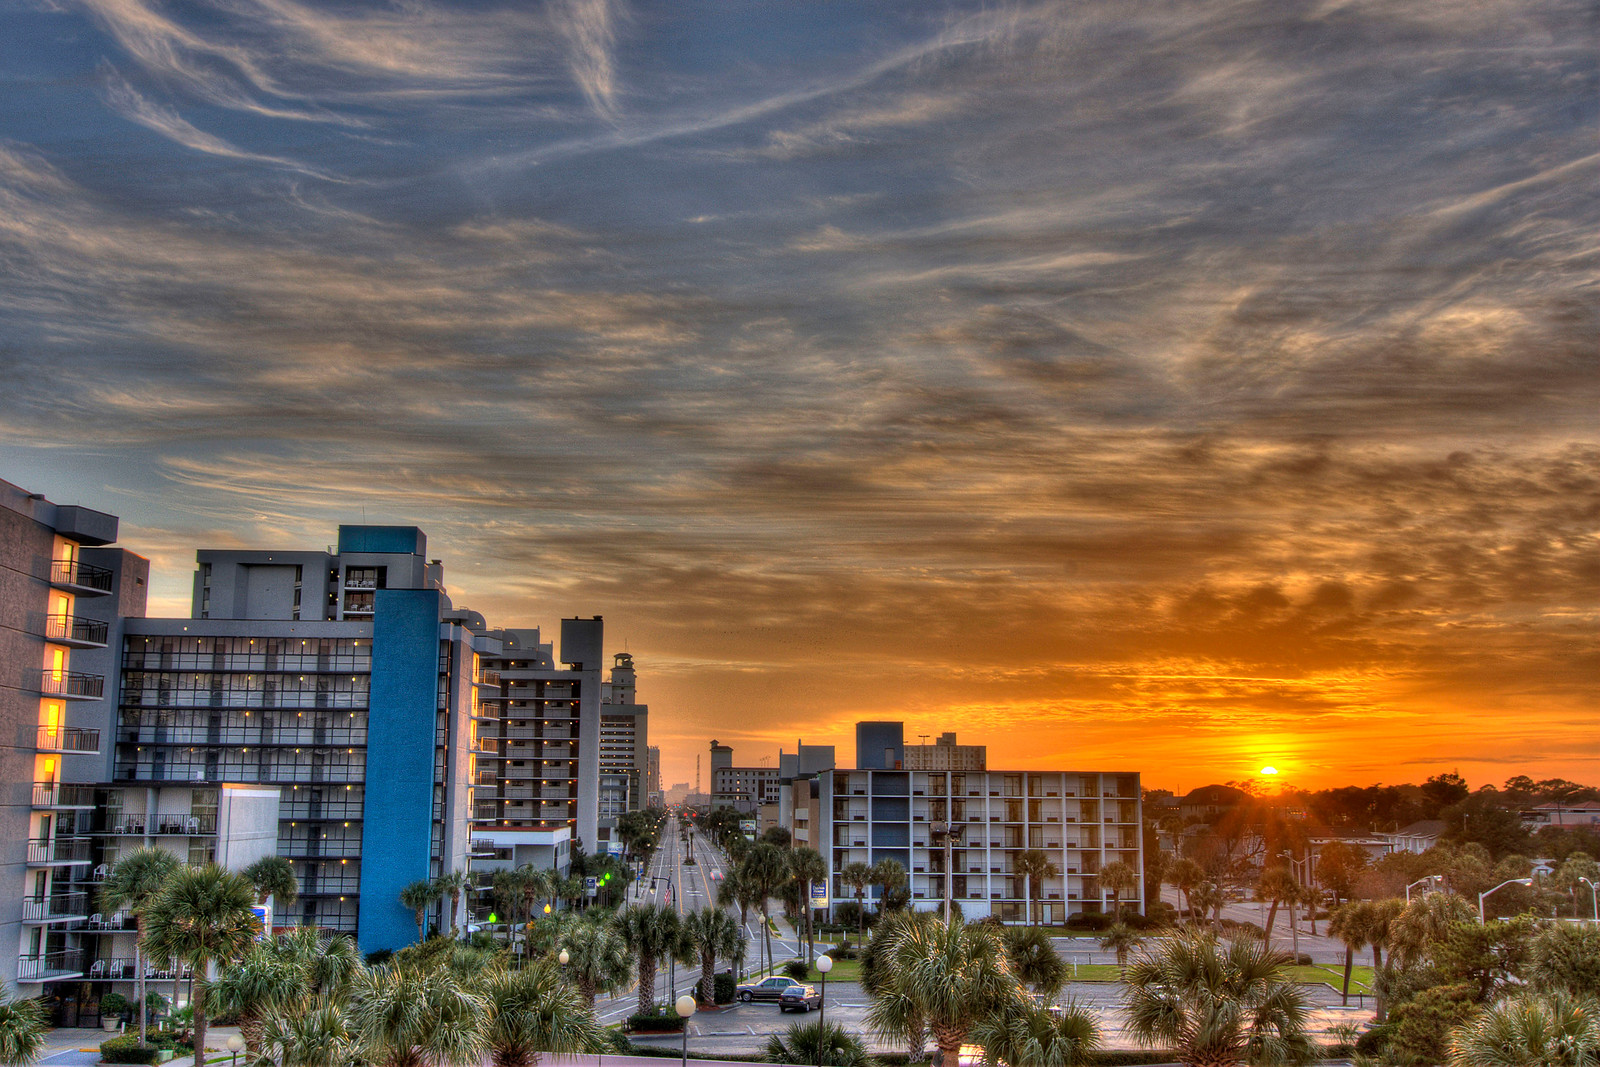 A warm sunset along Ocean Blvd. in Myrtle Beach, SC on Tuesday, January 8, 2013. Copyright 2013 Jason Barnette